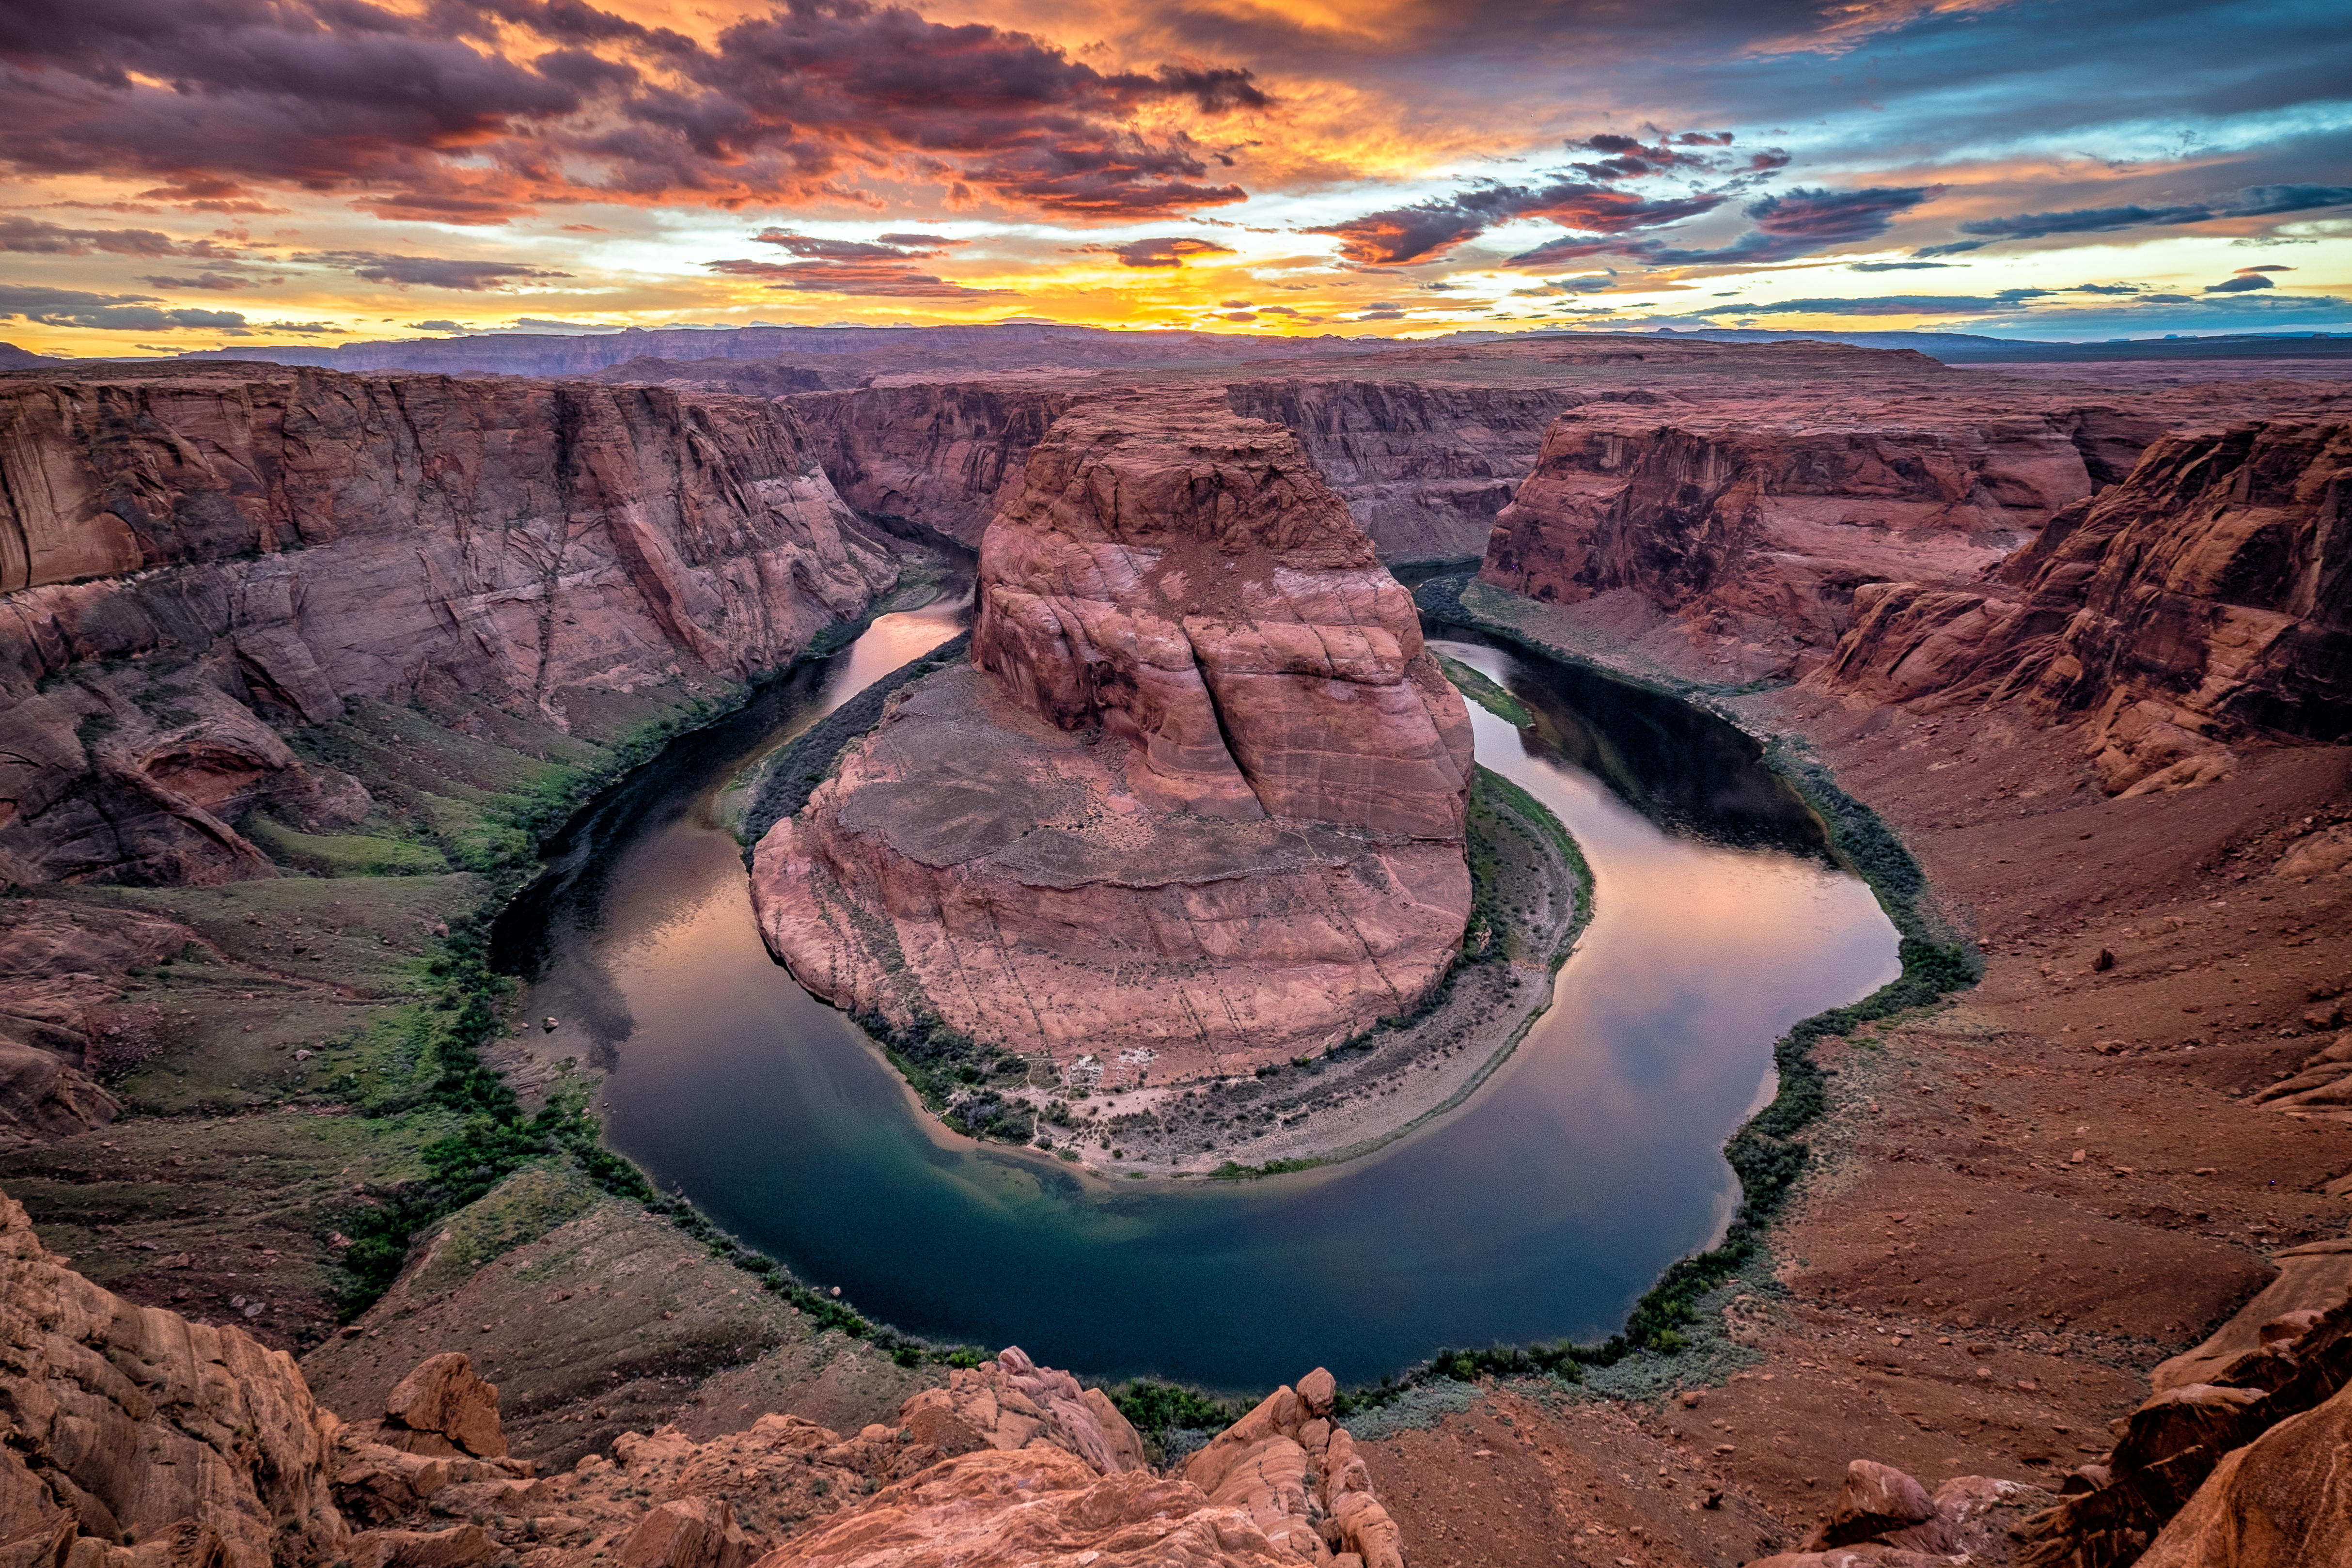 132183 download wallpaper Nature, Canyon, Rivers, Horseshoe, Colorado, Arizona screensavers and pictures for free